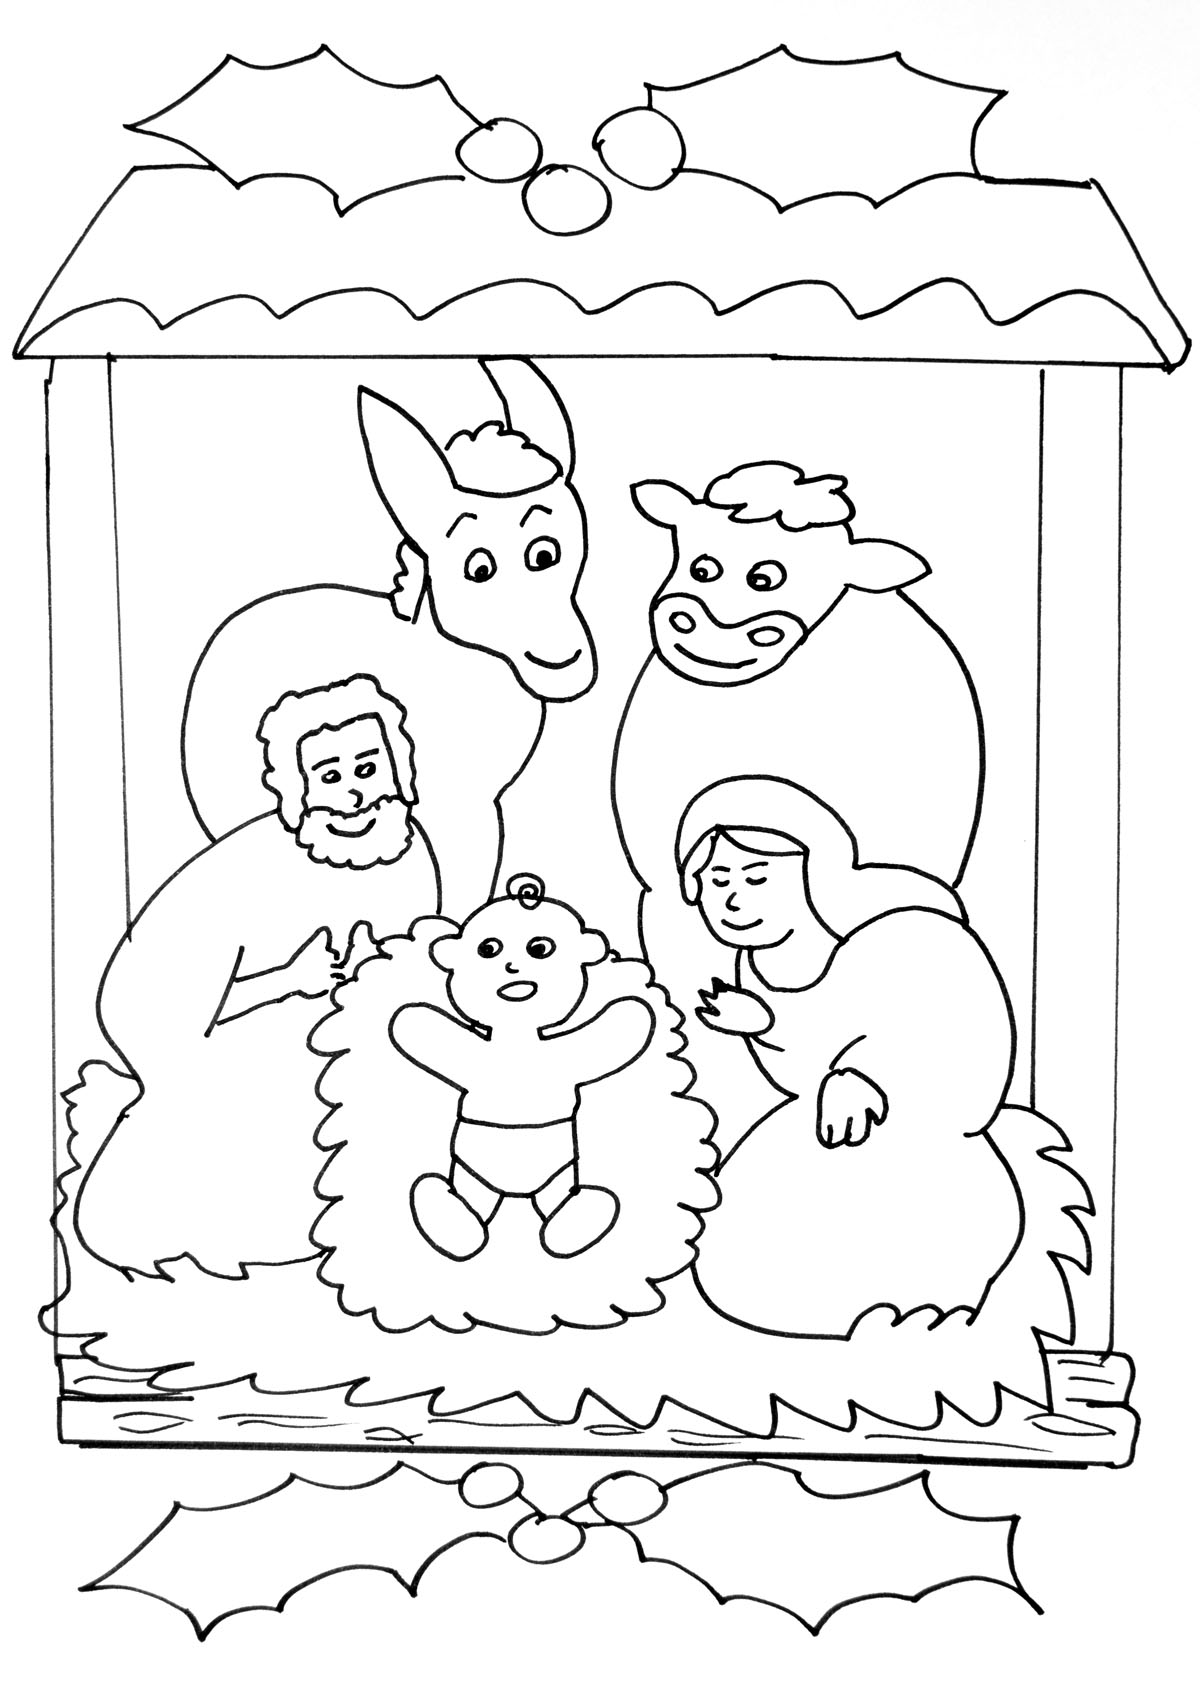 Creche nativite noel coloriages de no l coloriages - Dessin de creche de noel ...